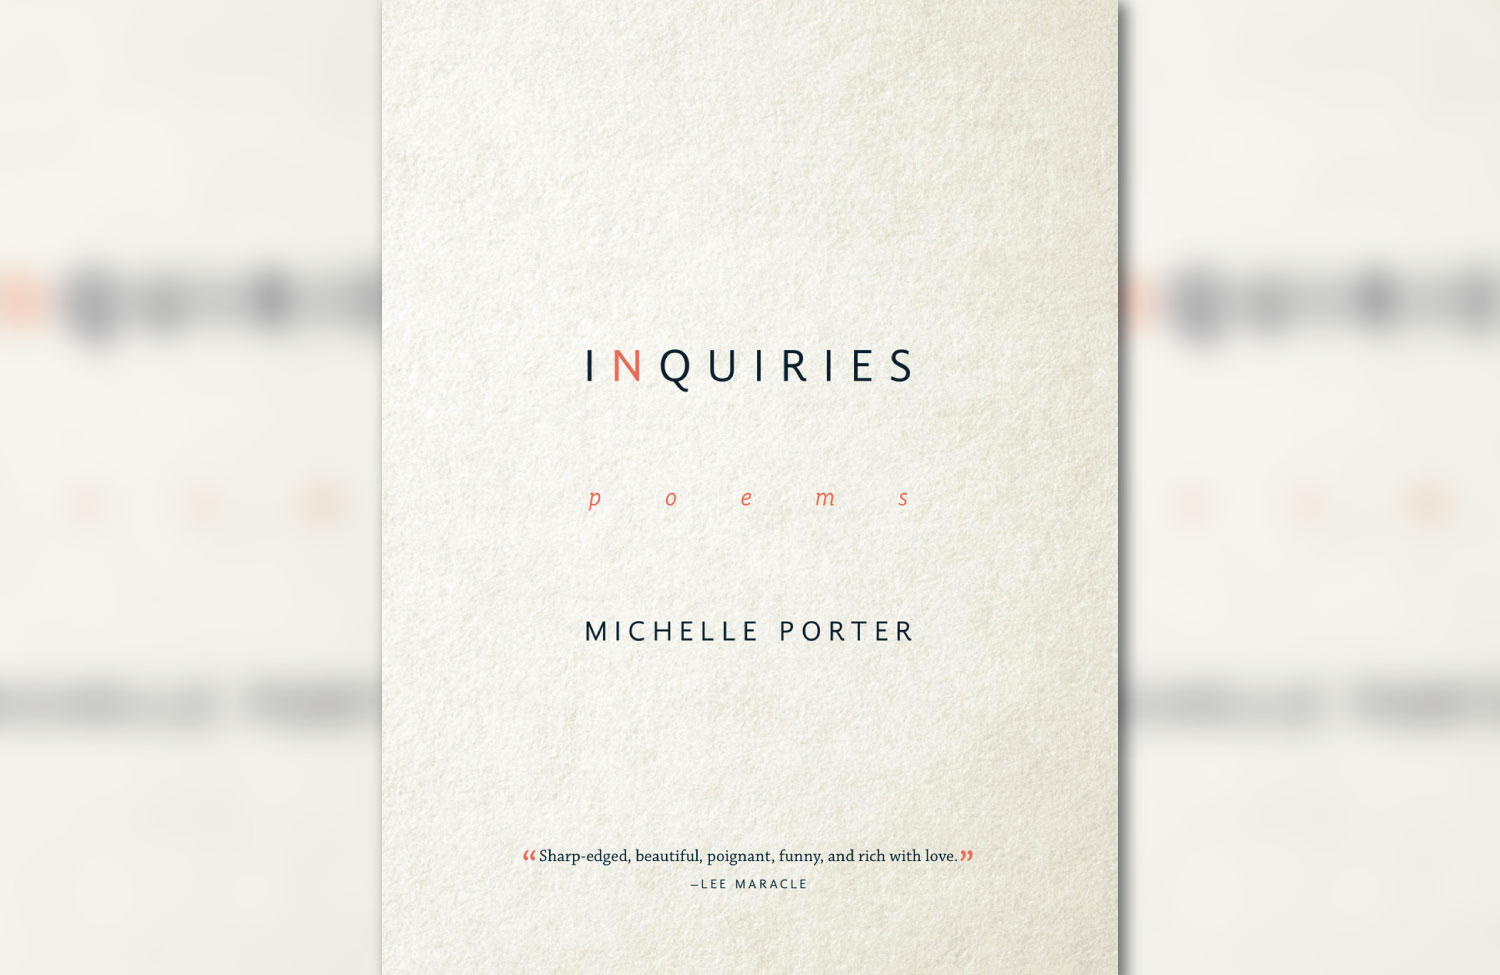 Book Review: 'Inquiries' by Métis Poet Michelle Porter